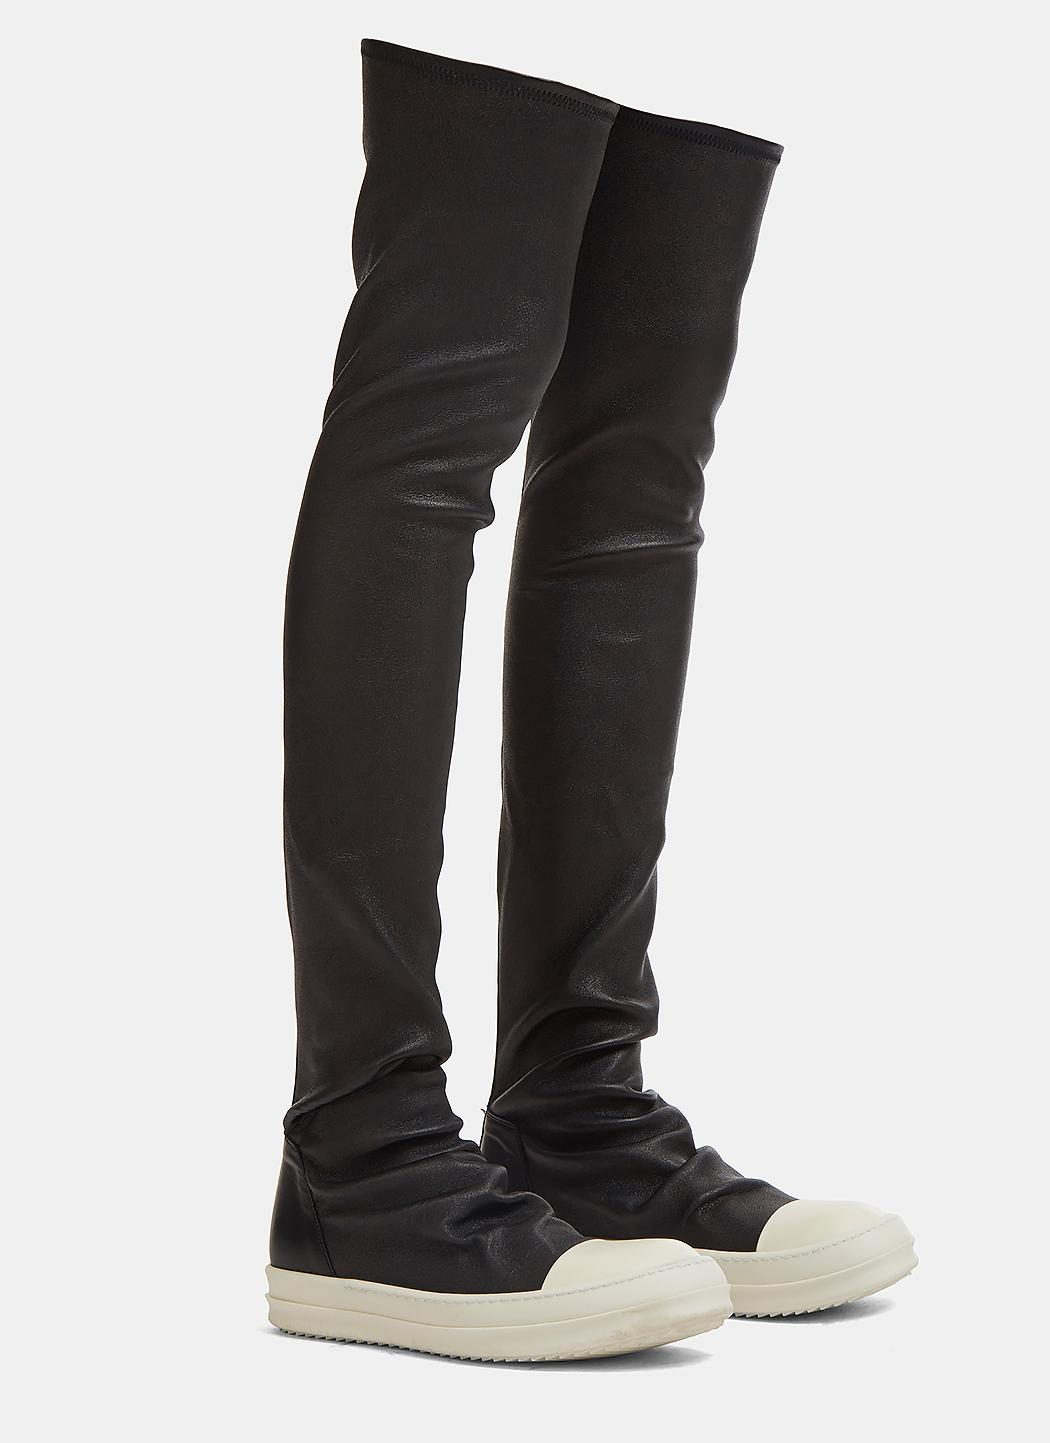 Cheap Original Free Shipping Find Great Stocking sneakers - Black Rick Owens Wholesale Price Cheap Online Cheap Very Cheap Discount Choice THTjaWc